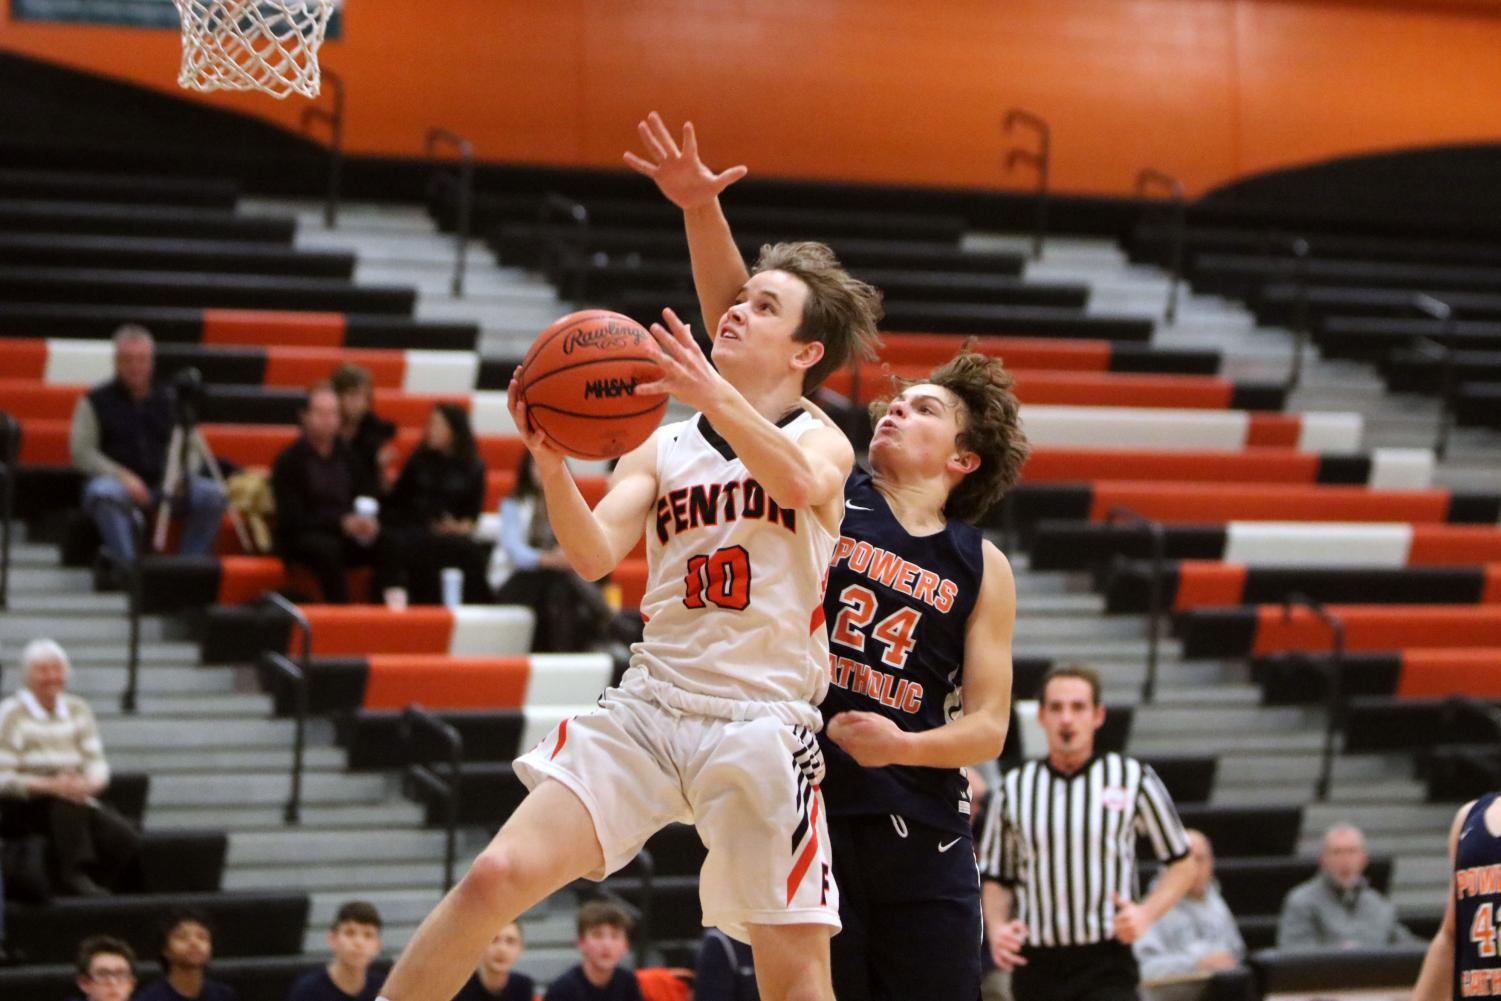 Freshman Ayden Gray jumps for the hoop hoping to make a shot. On Jan. 10 Fenton won 48-47 against Kearsley in a close game.